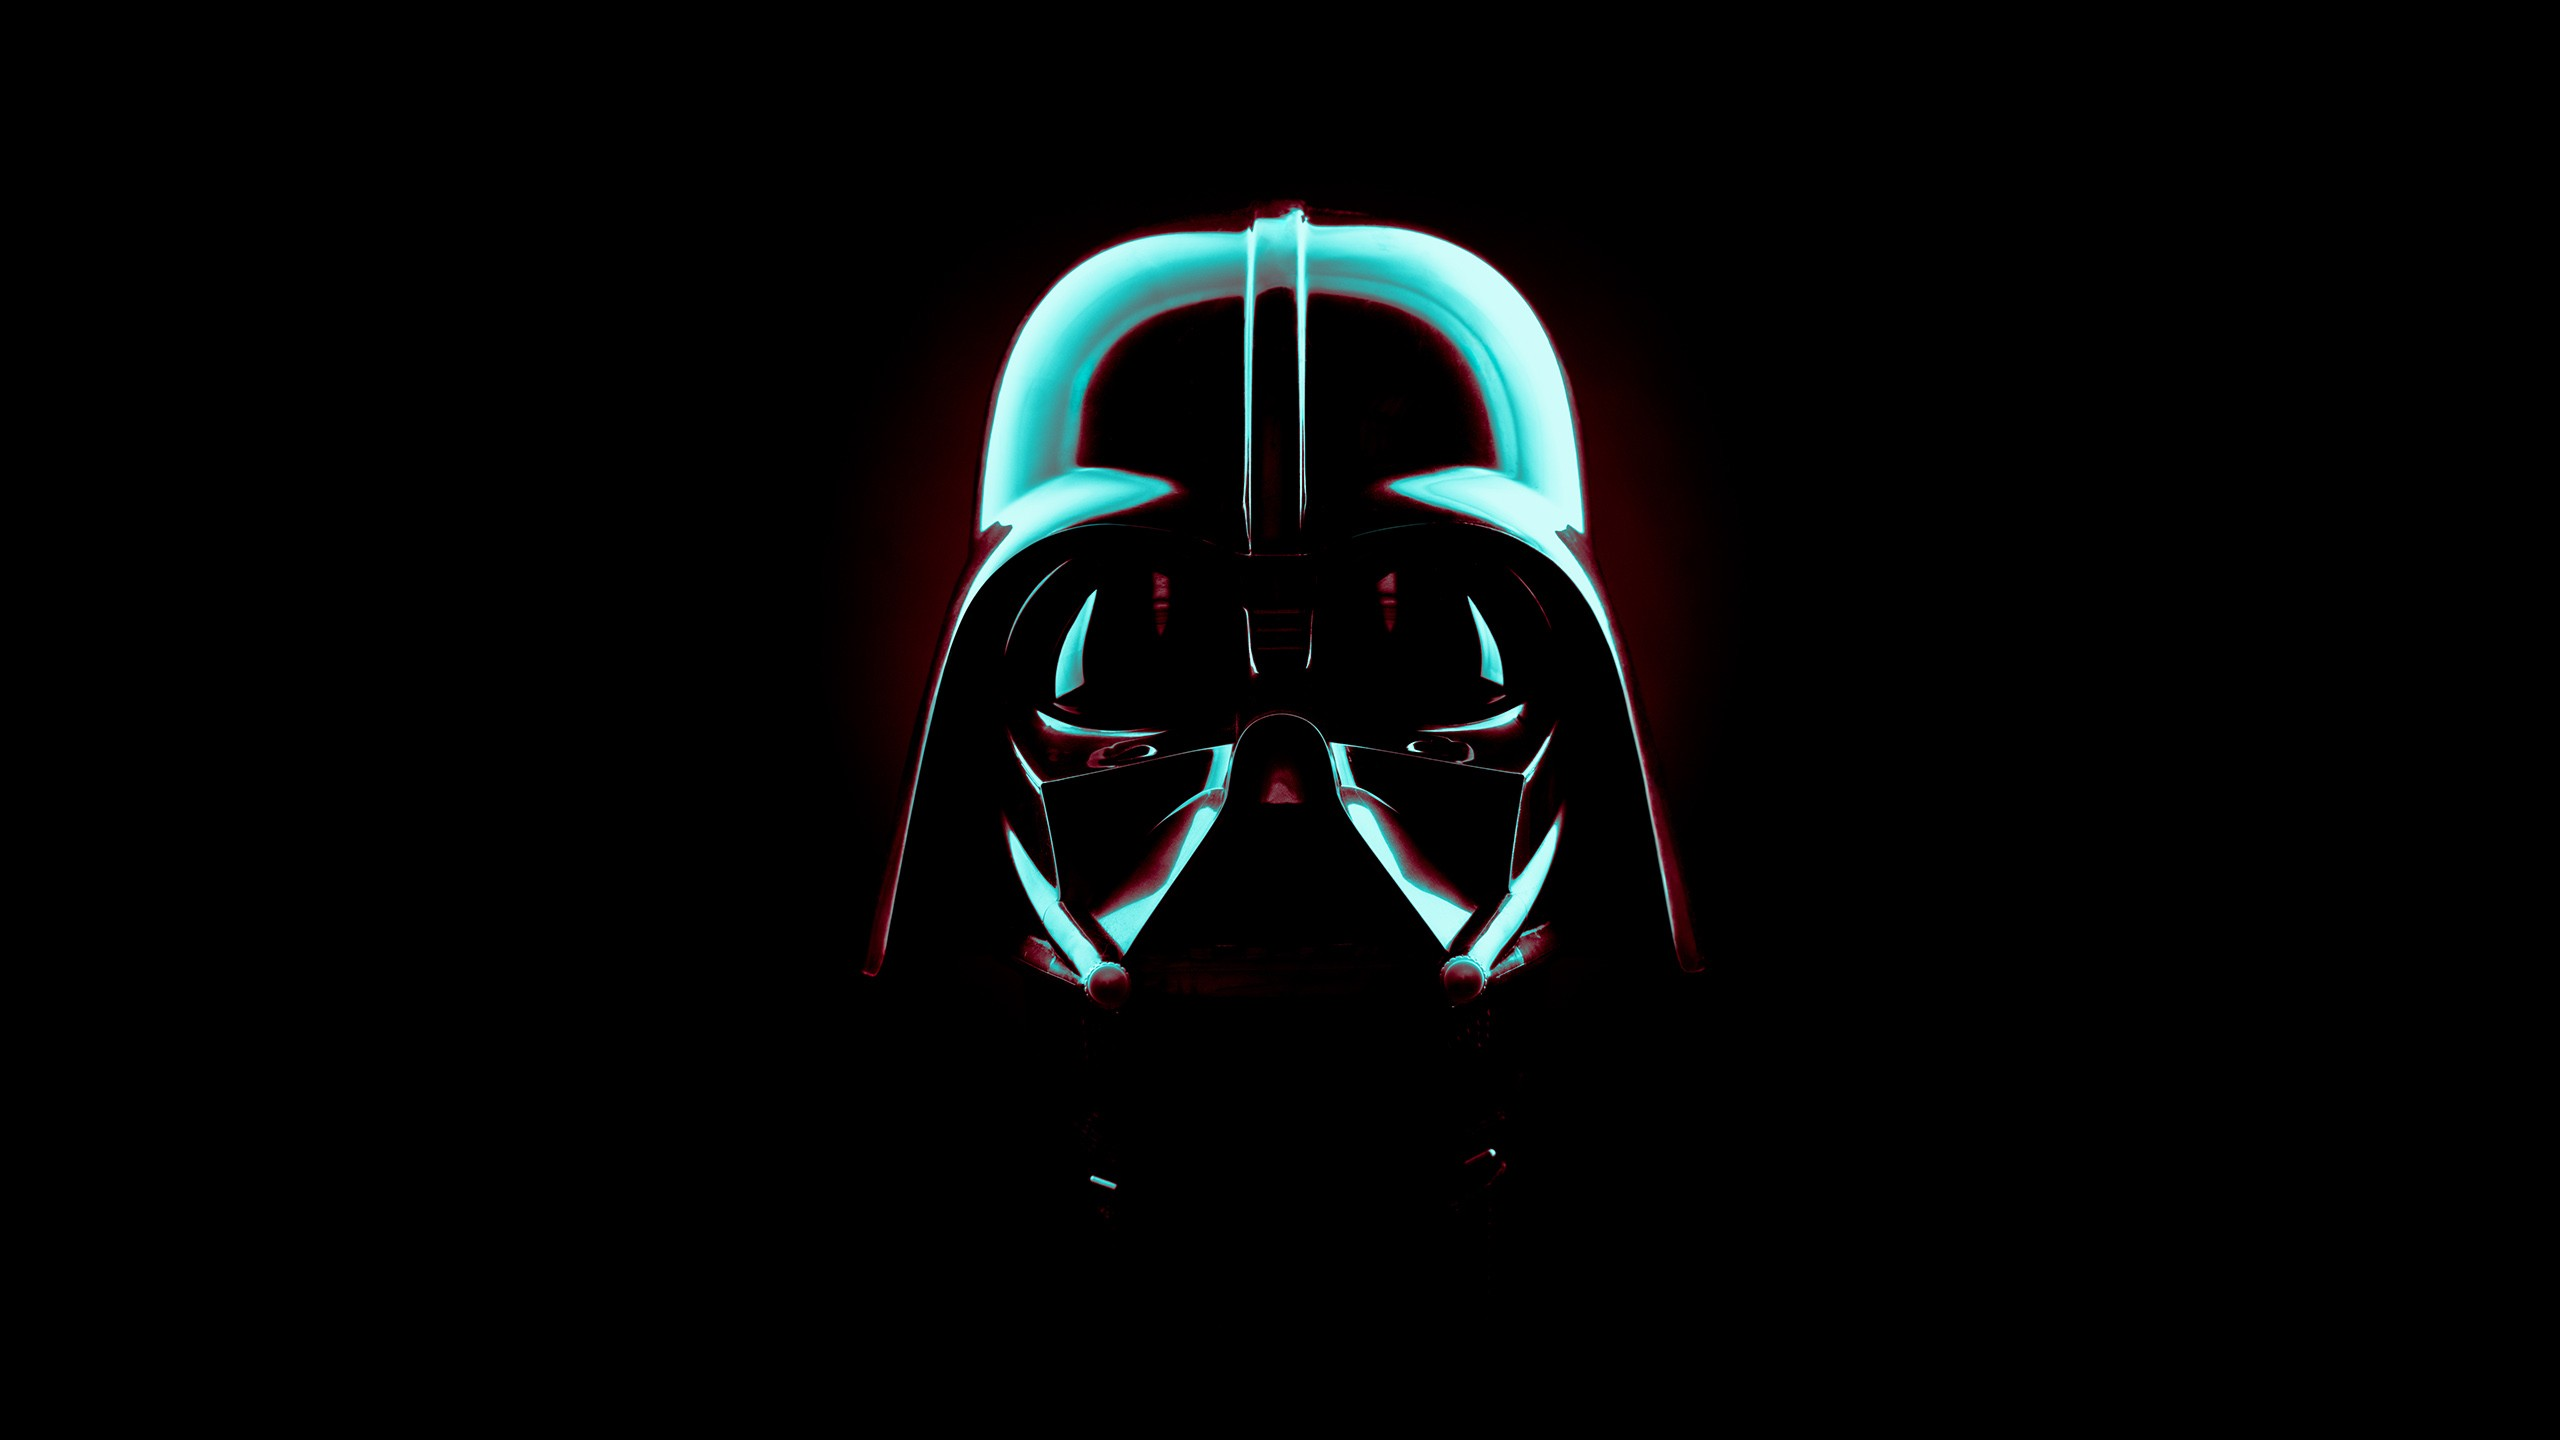 2560x1440 Star Wars Darth Vader Mask Desktop Pc And Mac Wallpaper